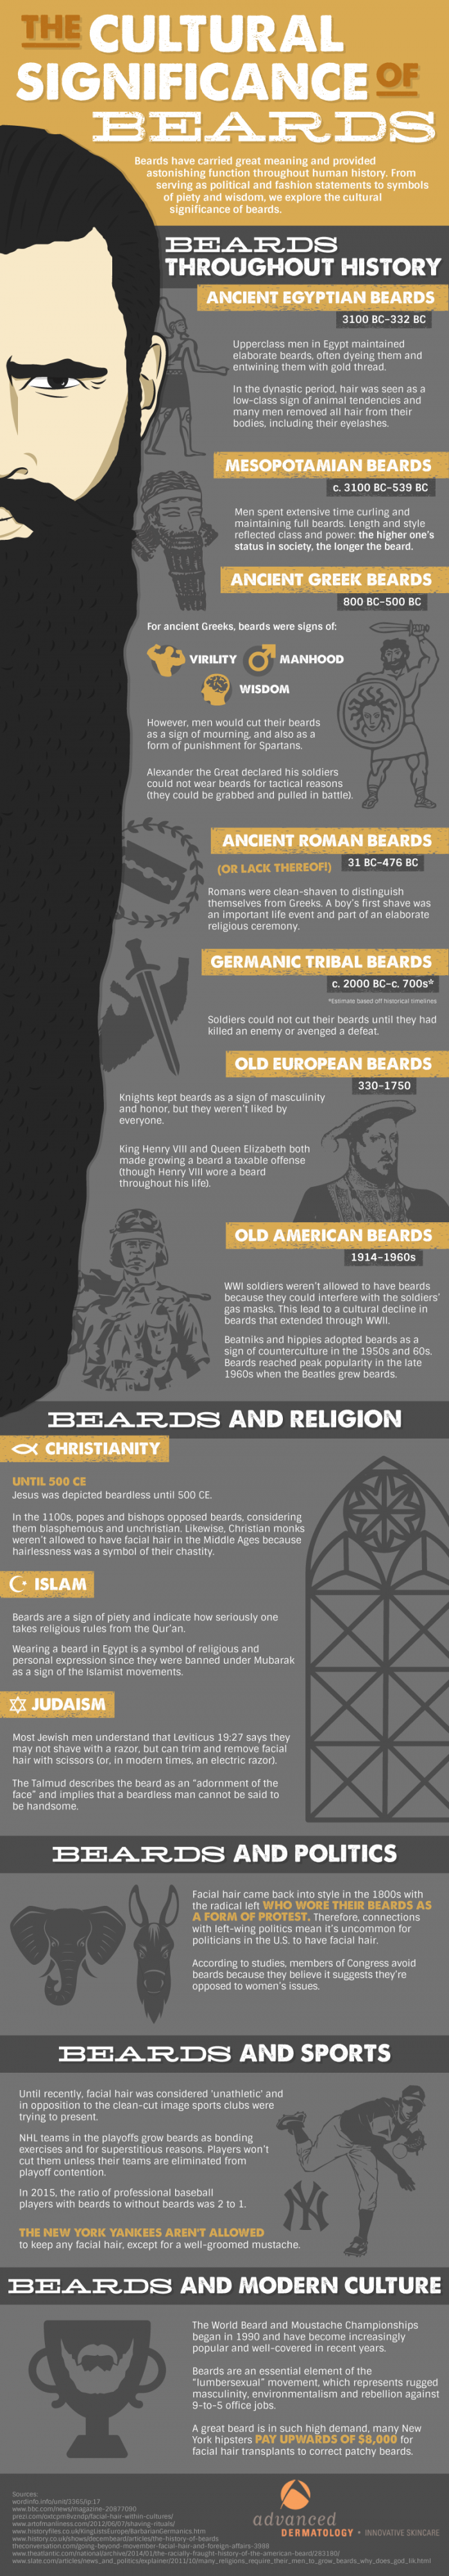 The Significance of Beards throughout History